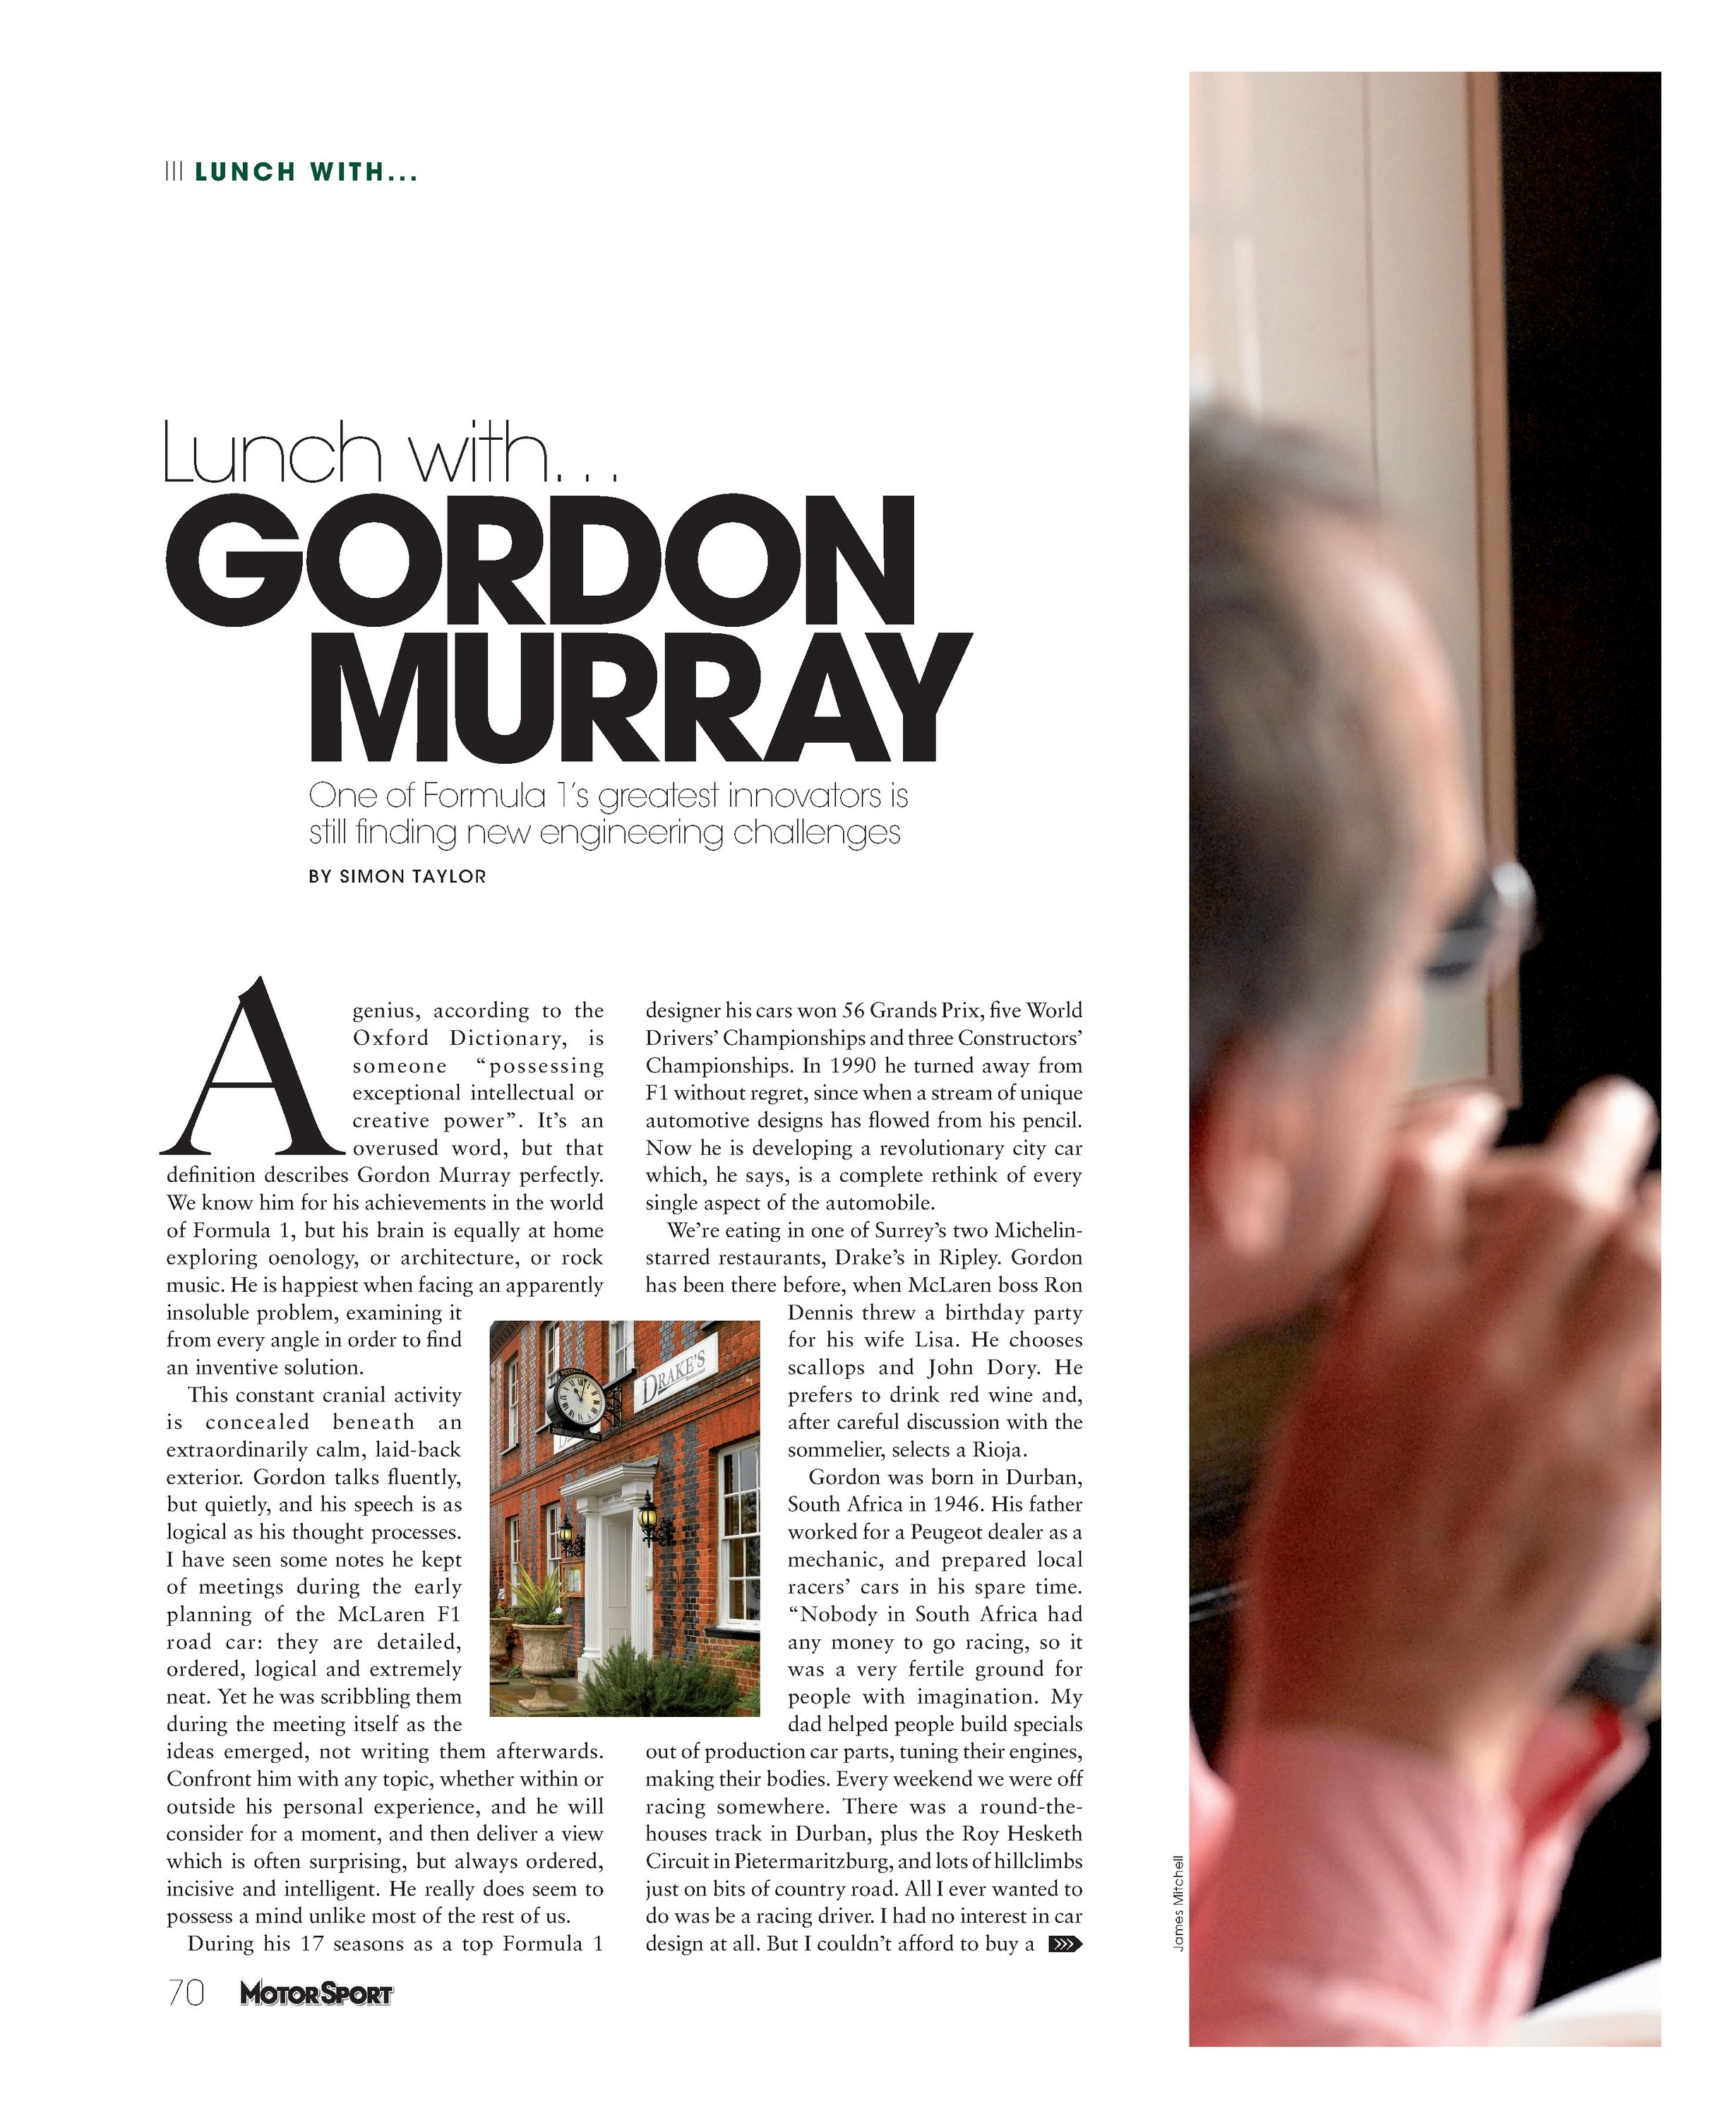 Lunch With... Gordon Murray image